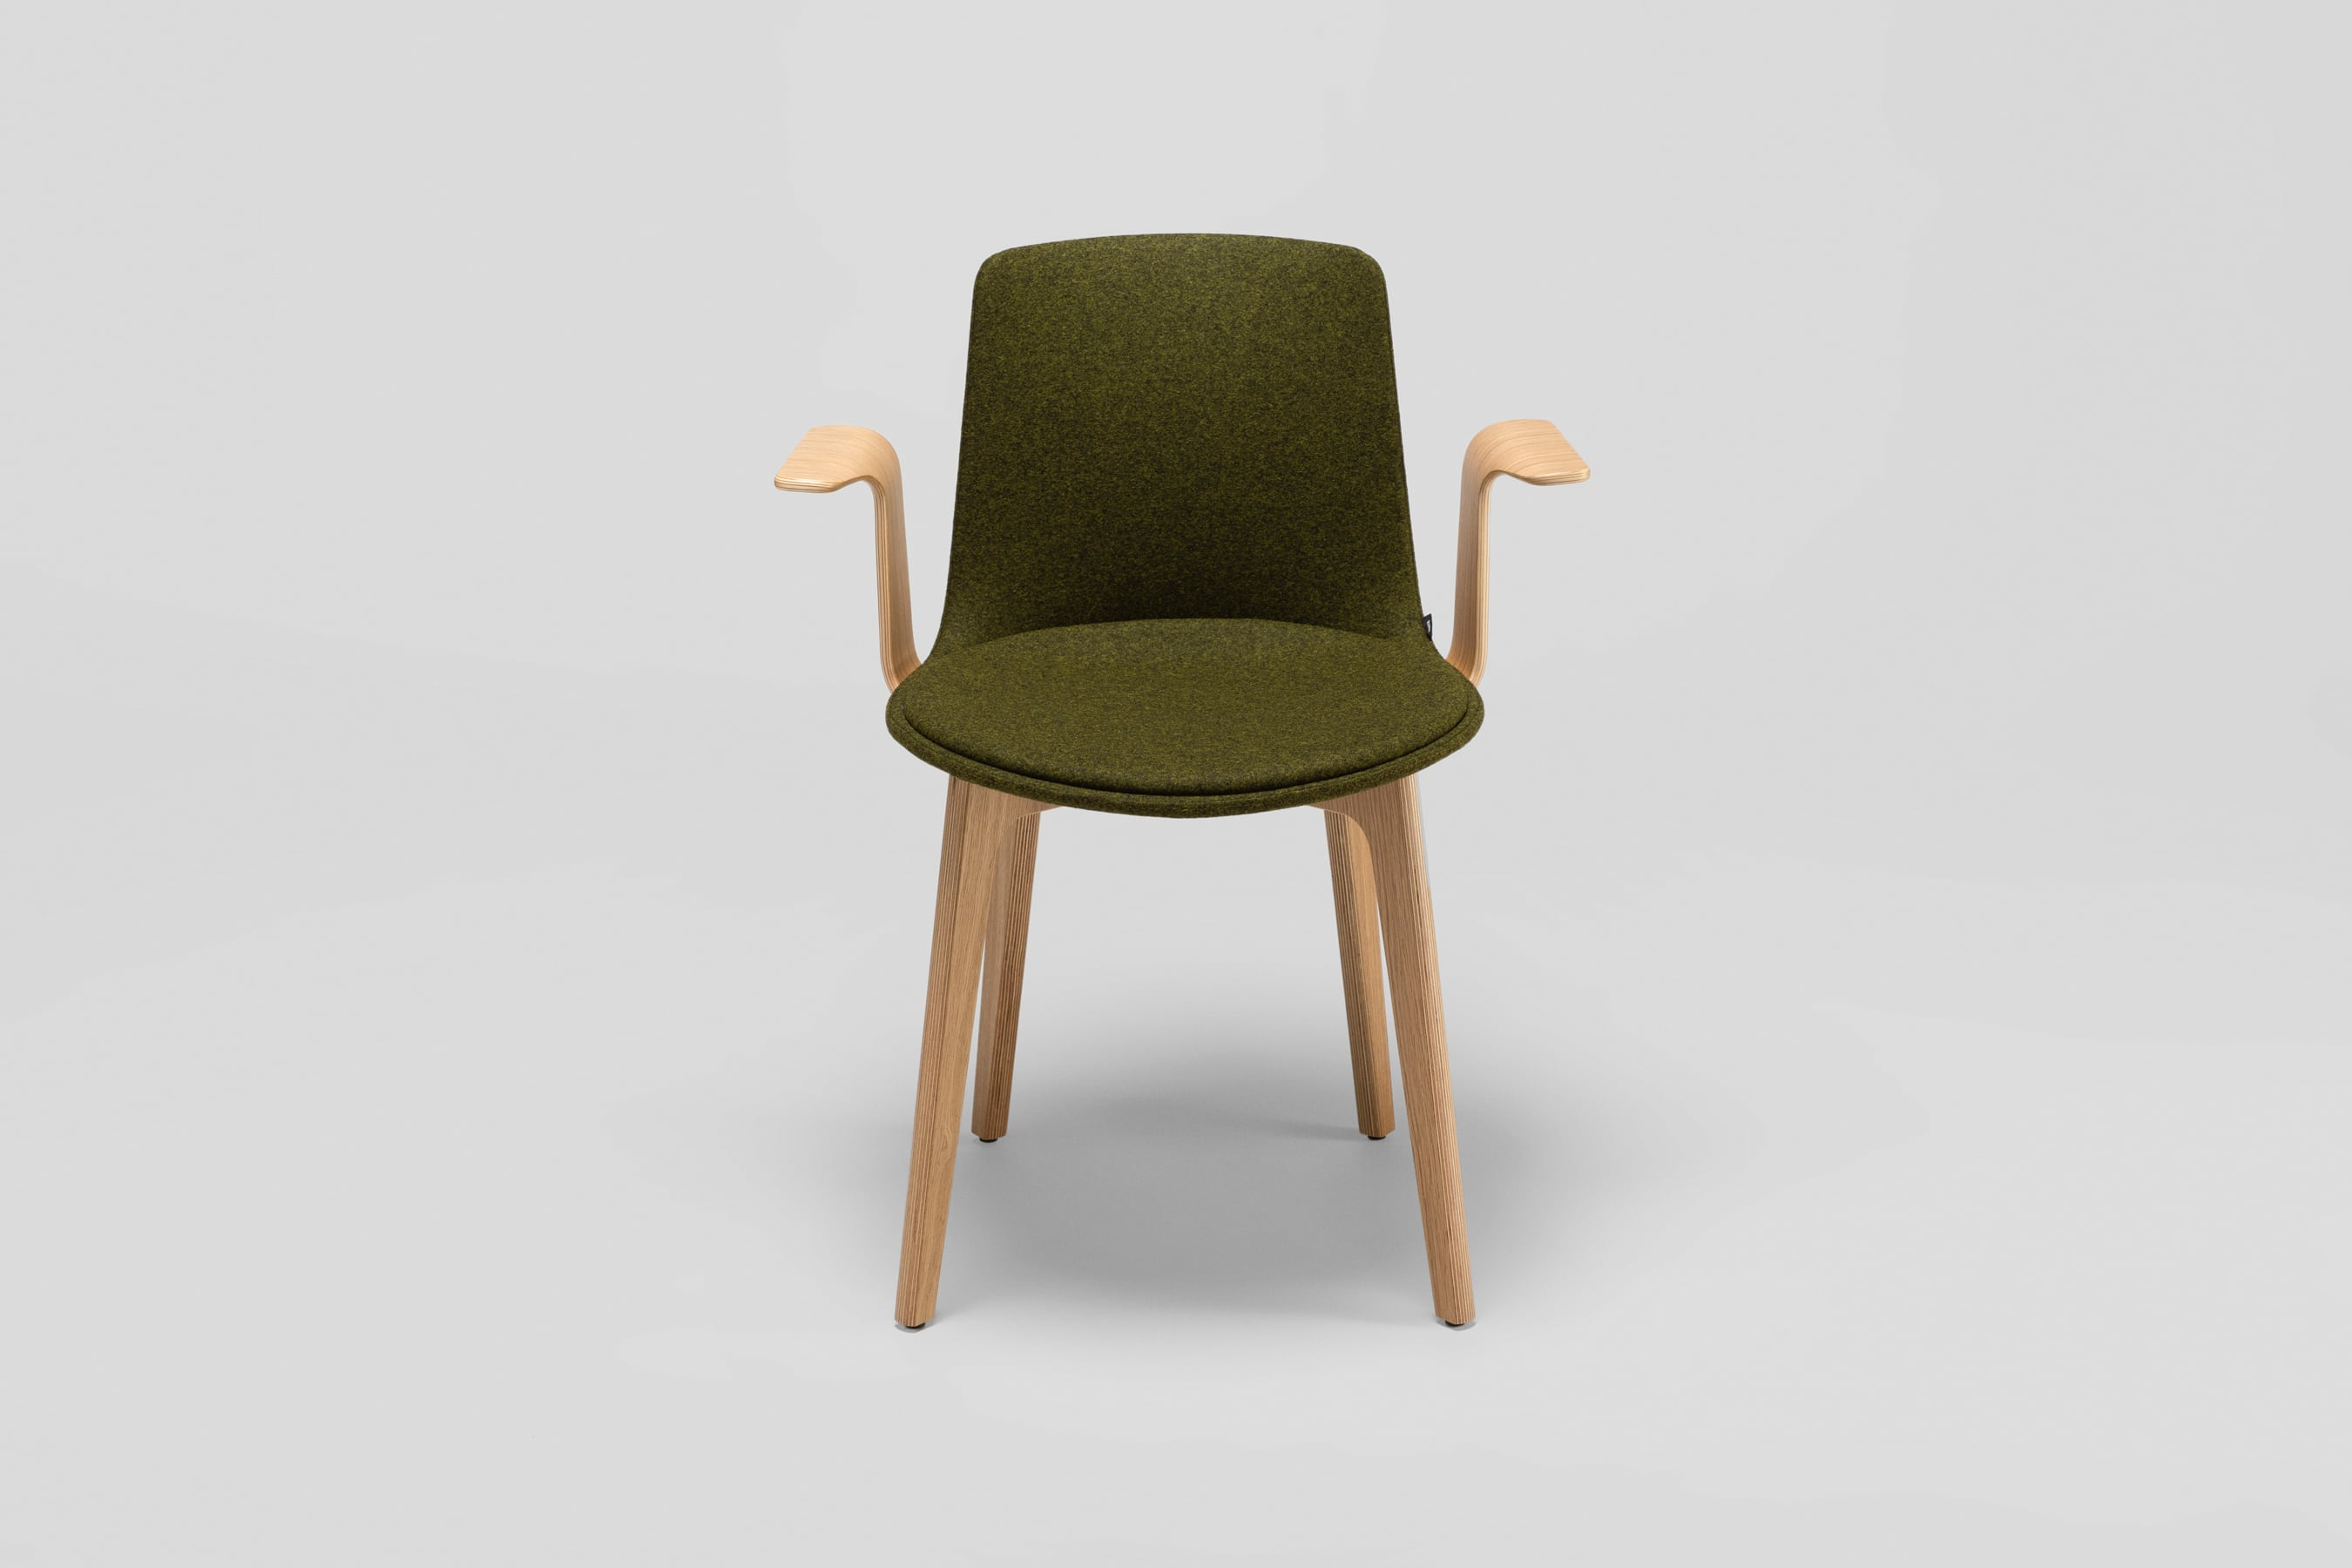 Lottus Wood chair